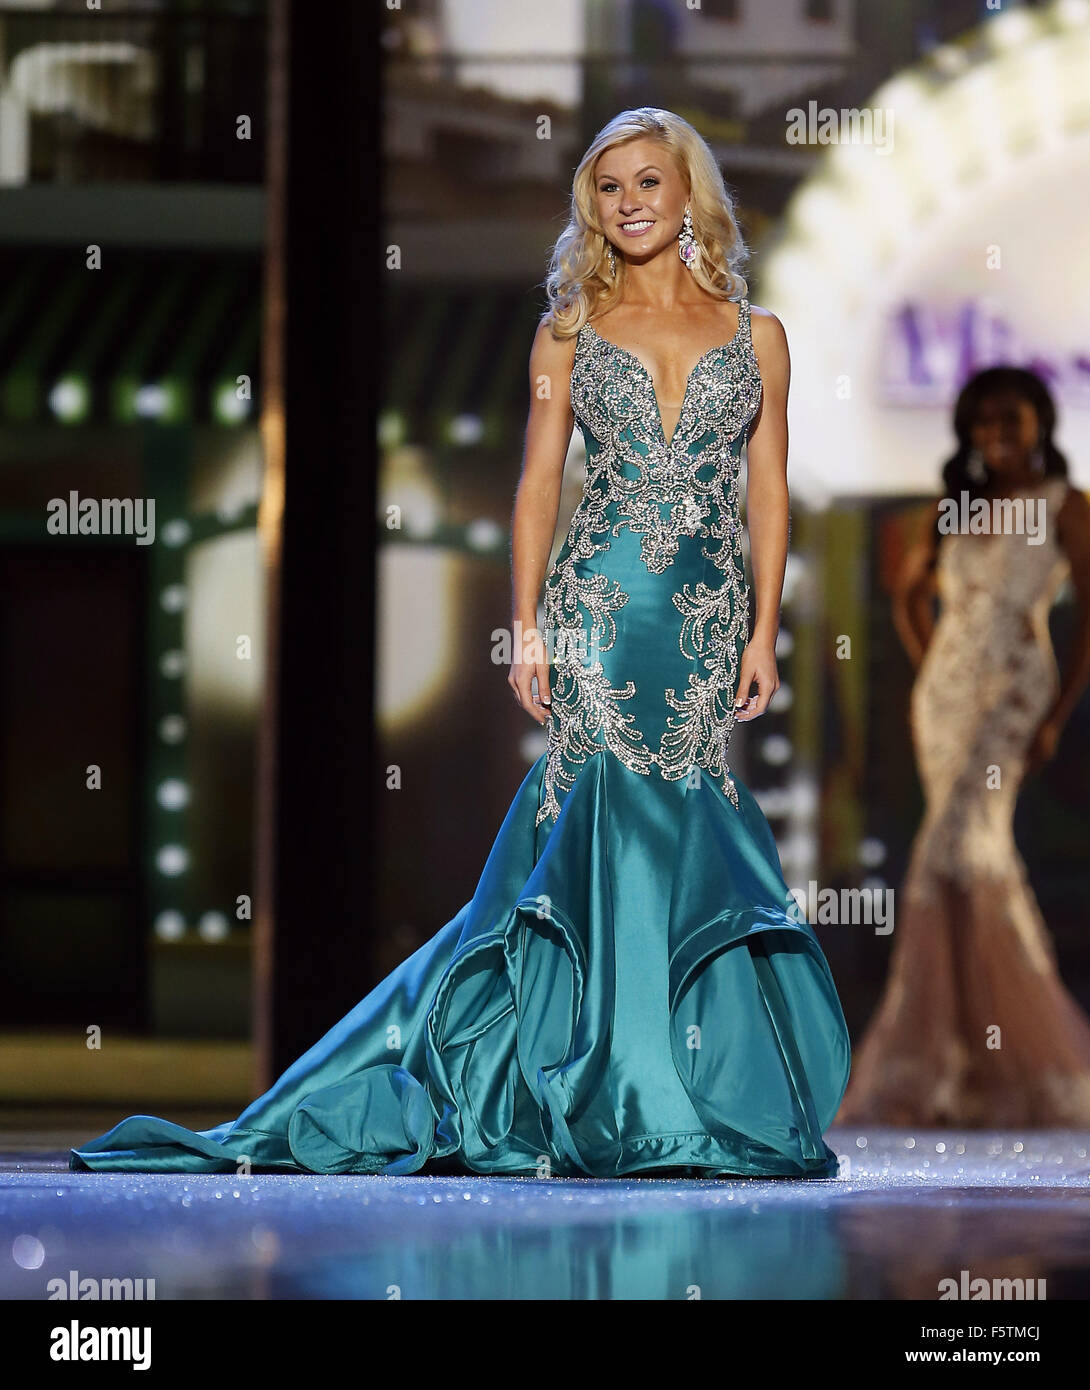 2016 Miss America Preliminary Competition Day 1 at Boardwalk Hall Atlantic City, NJ  Featuring: Miss New Mexico - Stock Image